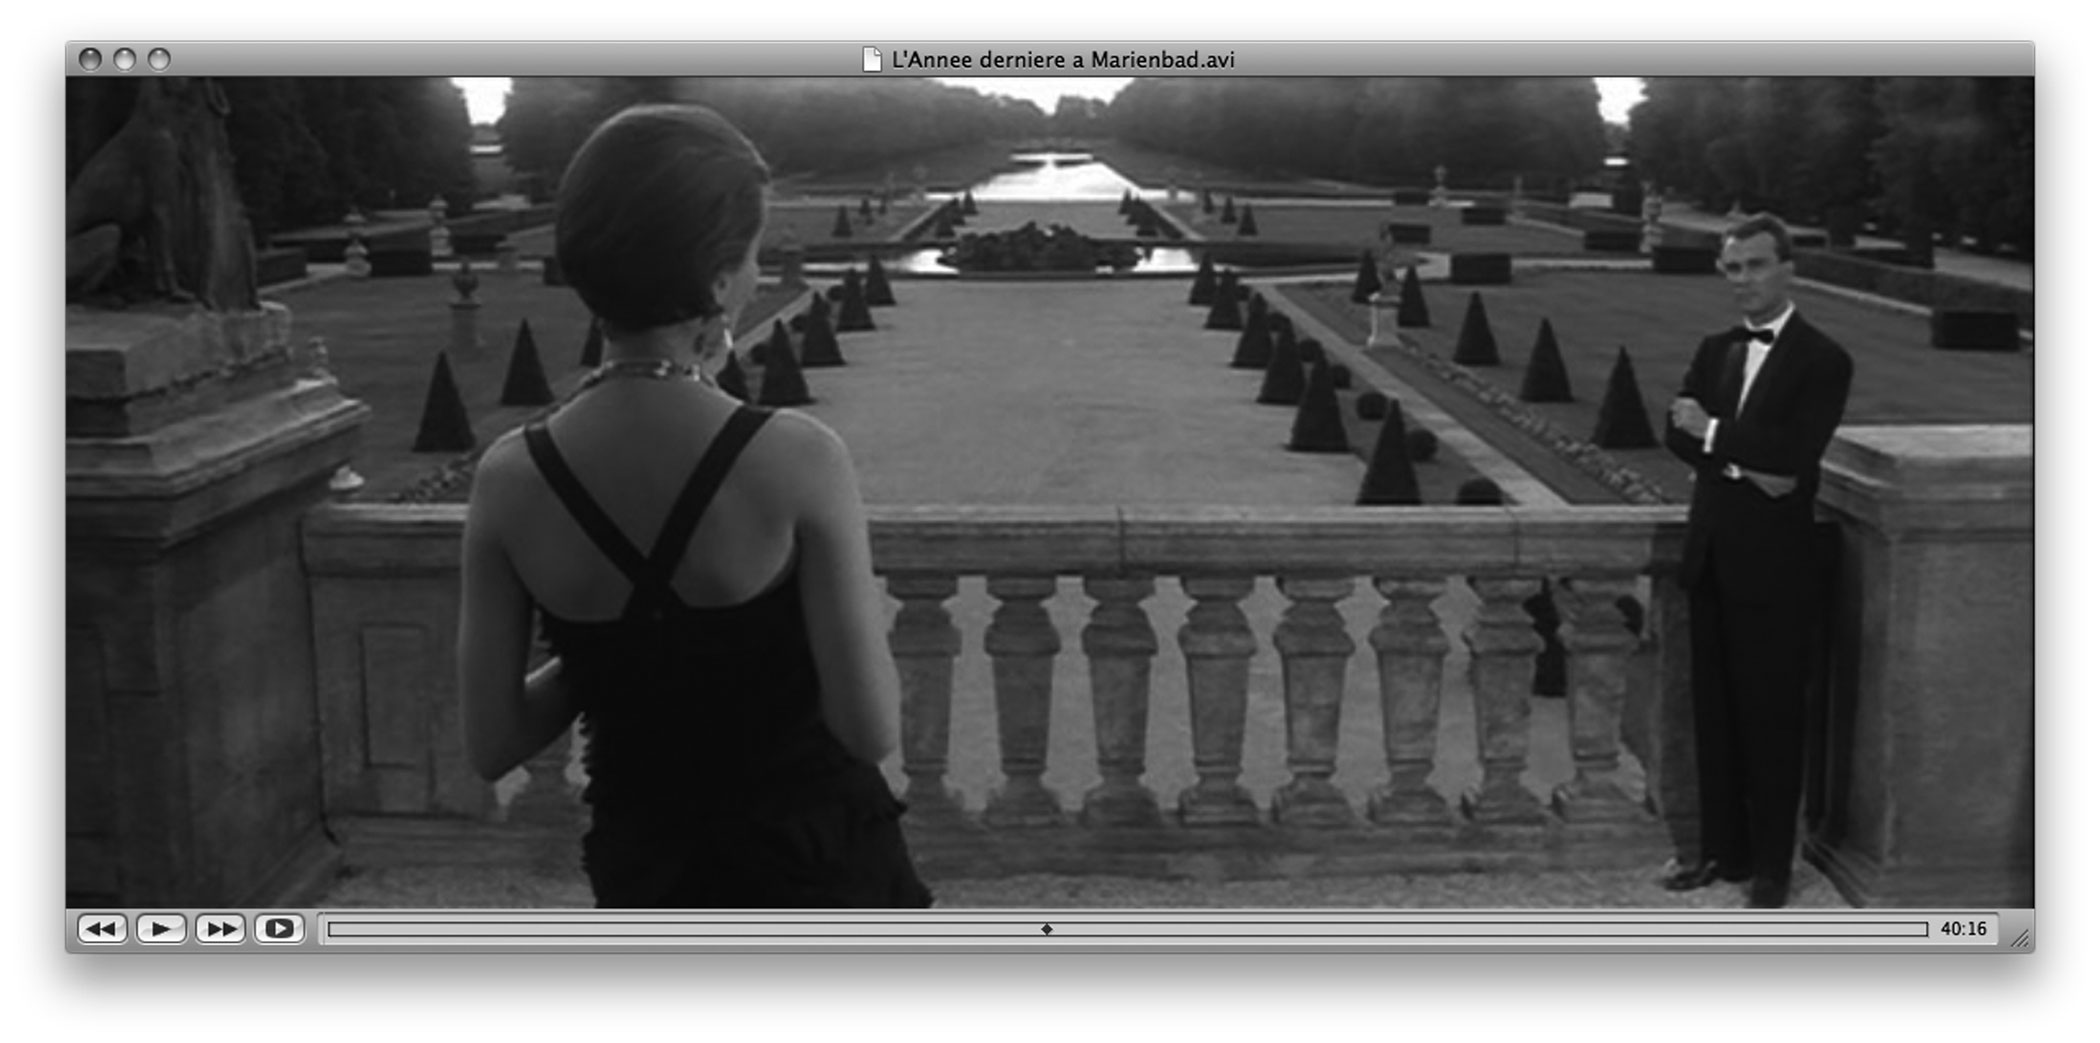 screenshot_marienbad